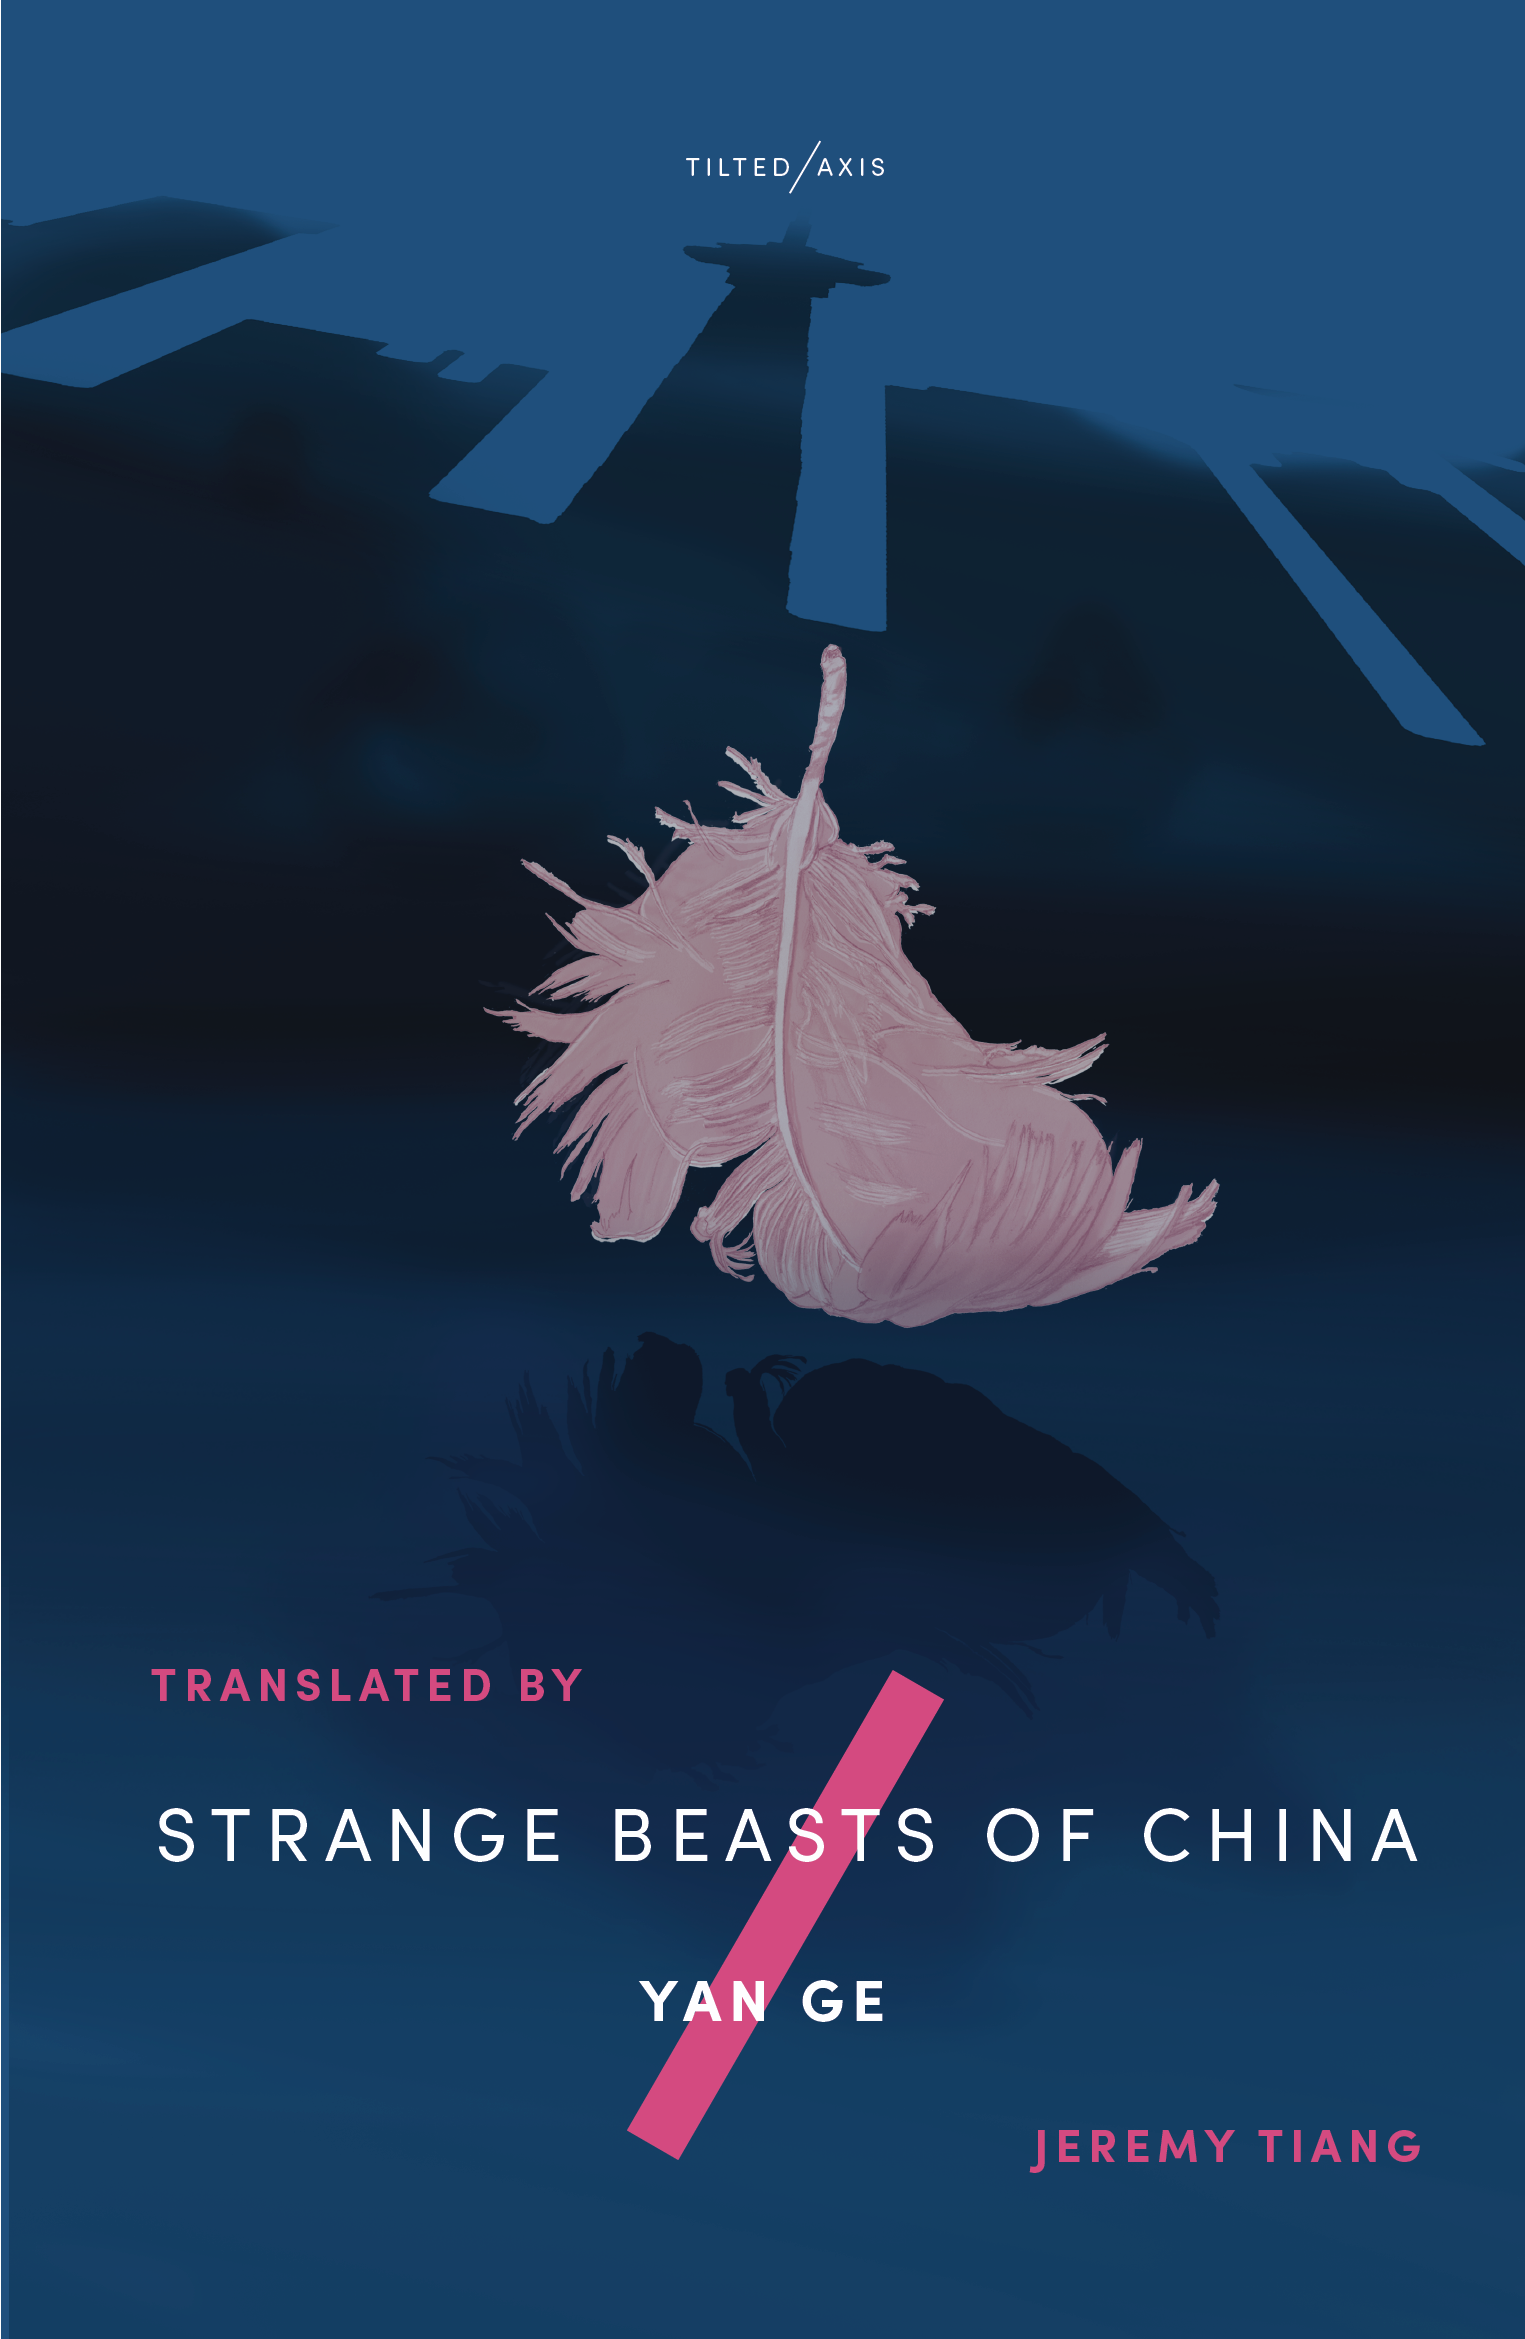 Front cover illustration of the book, Strange Beasts of China by Yan Ge and translated by Jeremy Tiang. Image shows a fallen pink feather on a navy blue background that depicts the shadow of a city skyline.